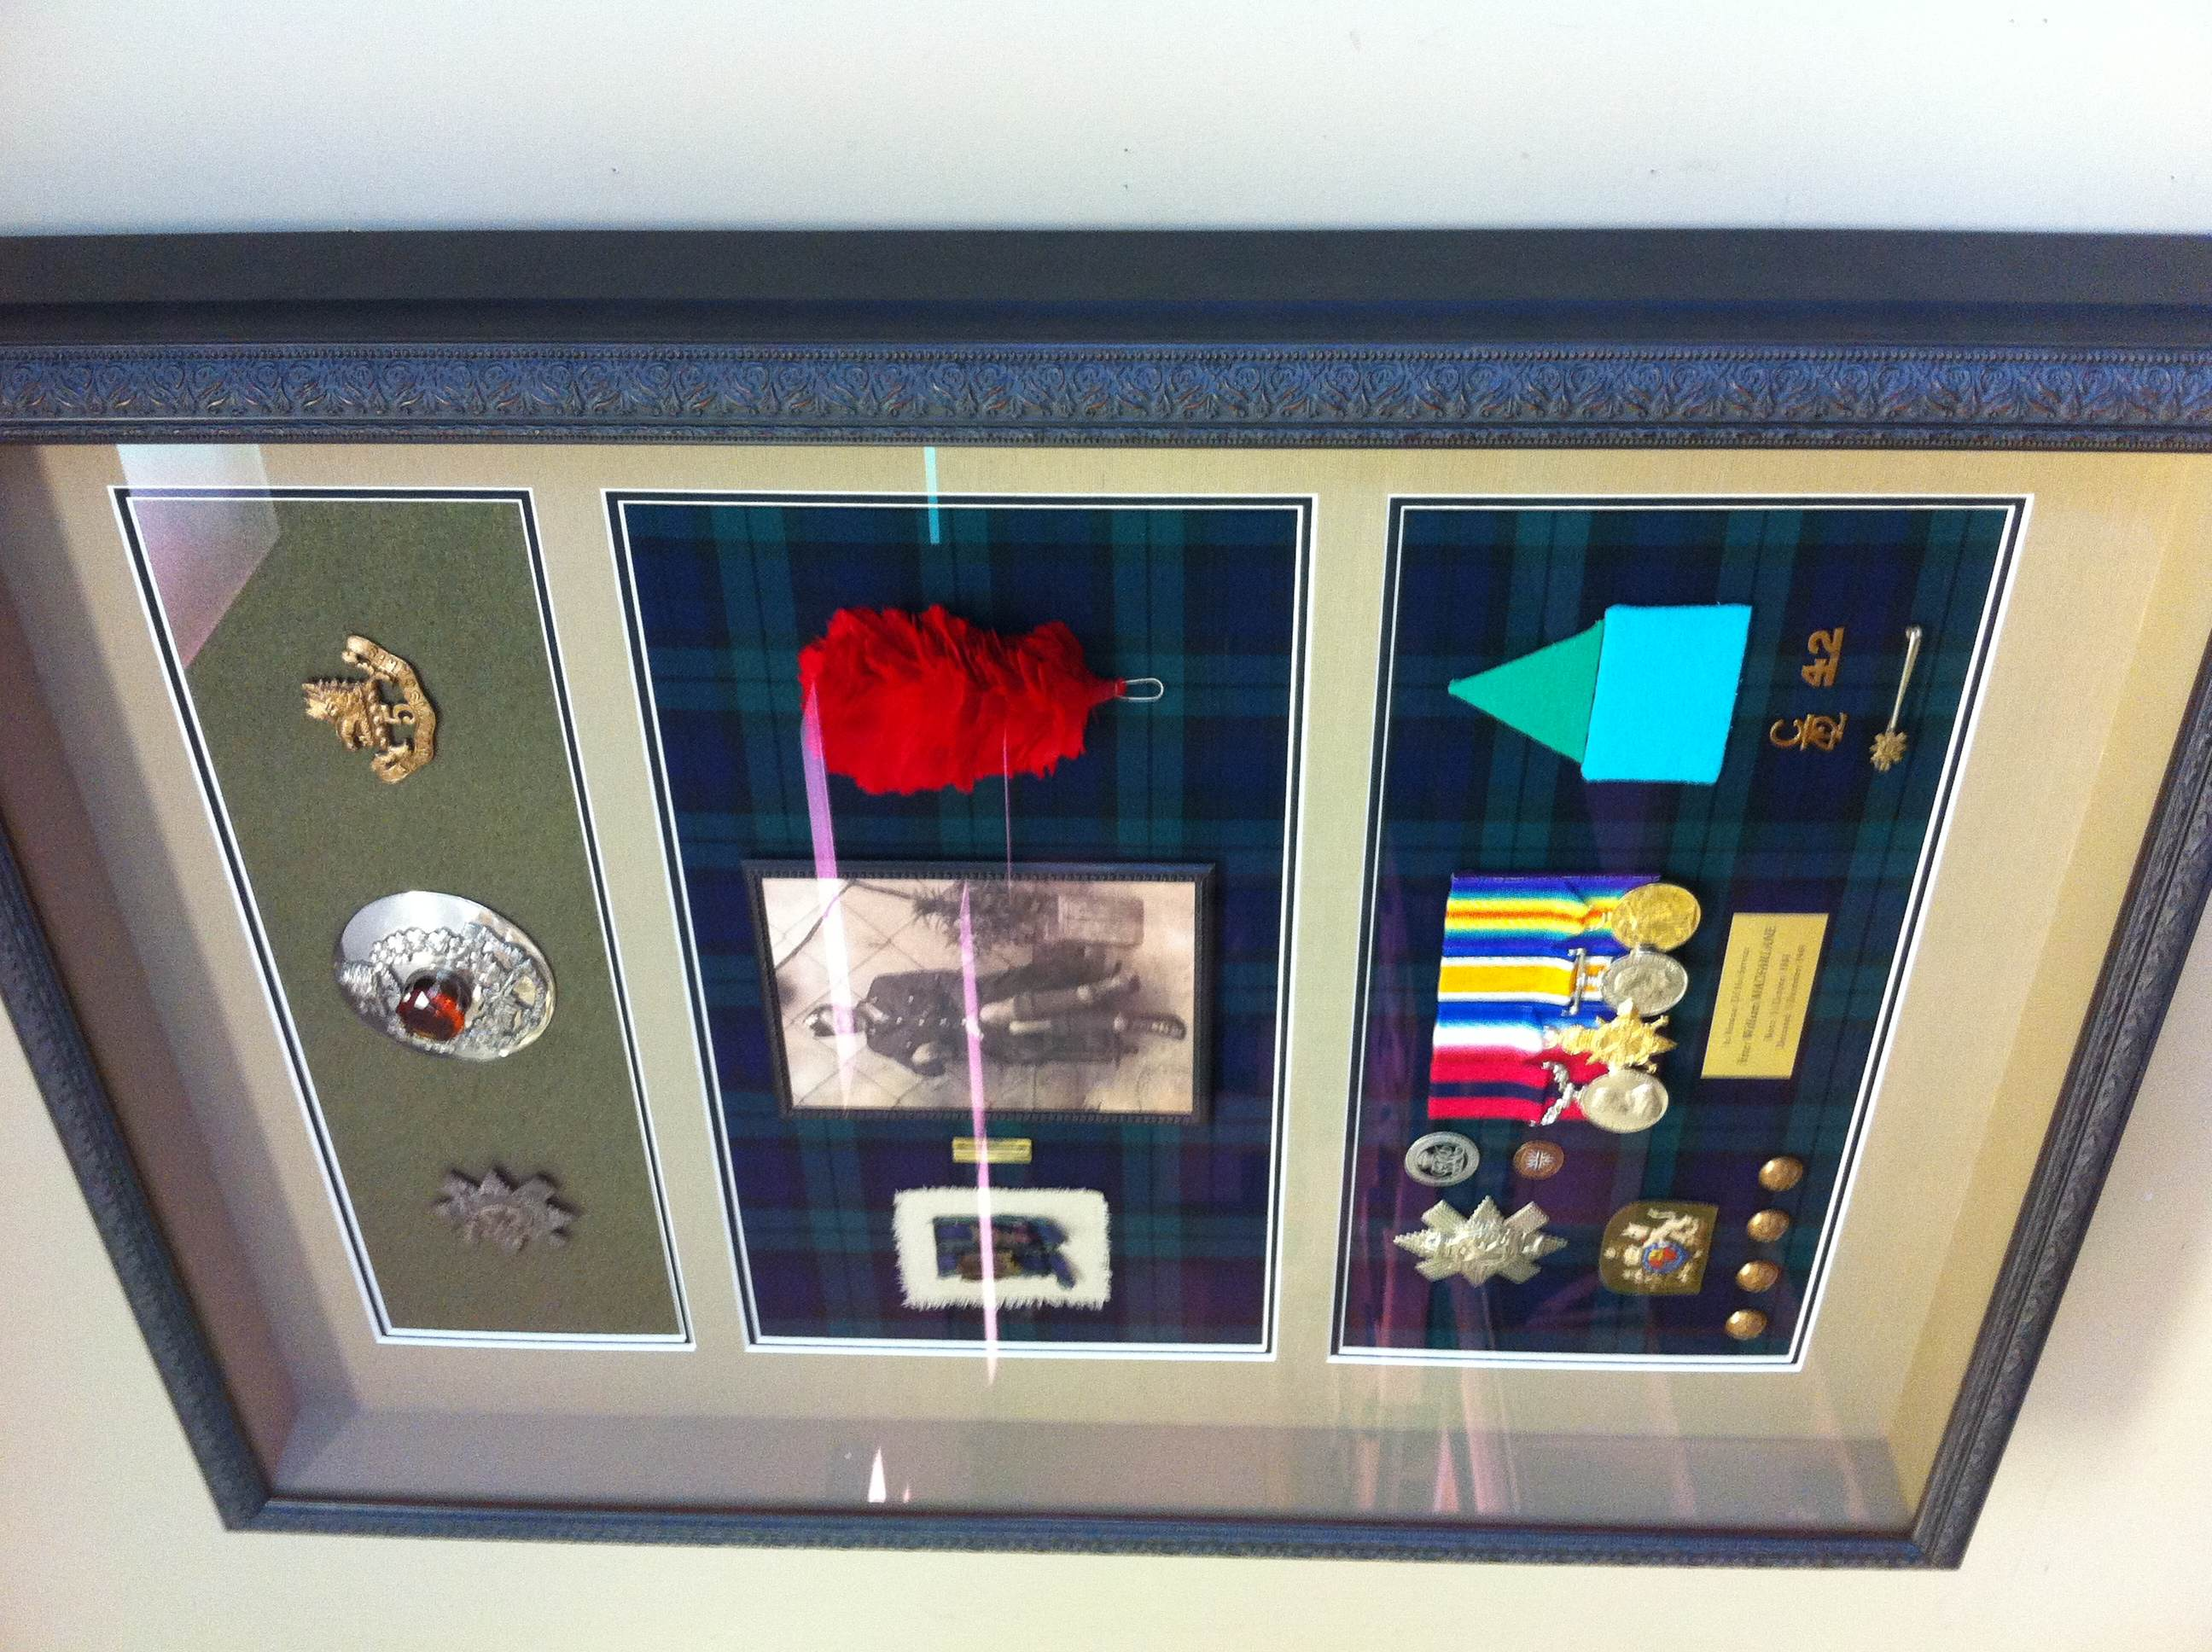 Historical Items in Metal Frame - Alternative Angle